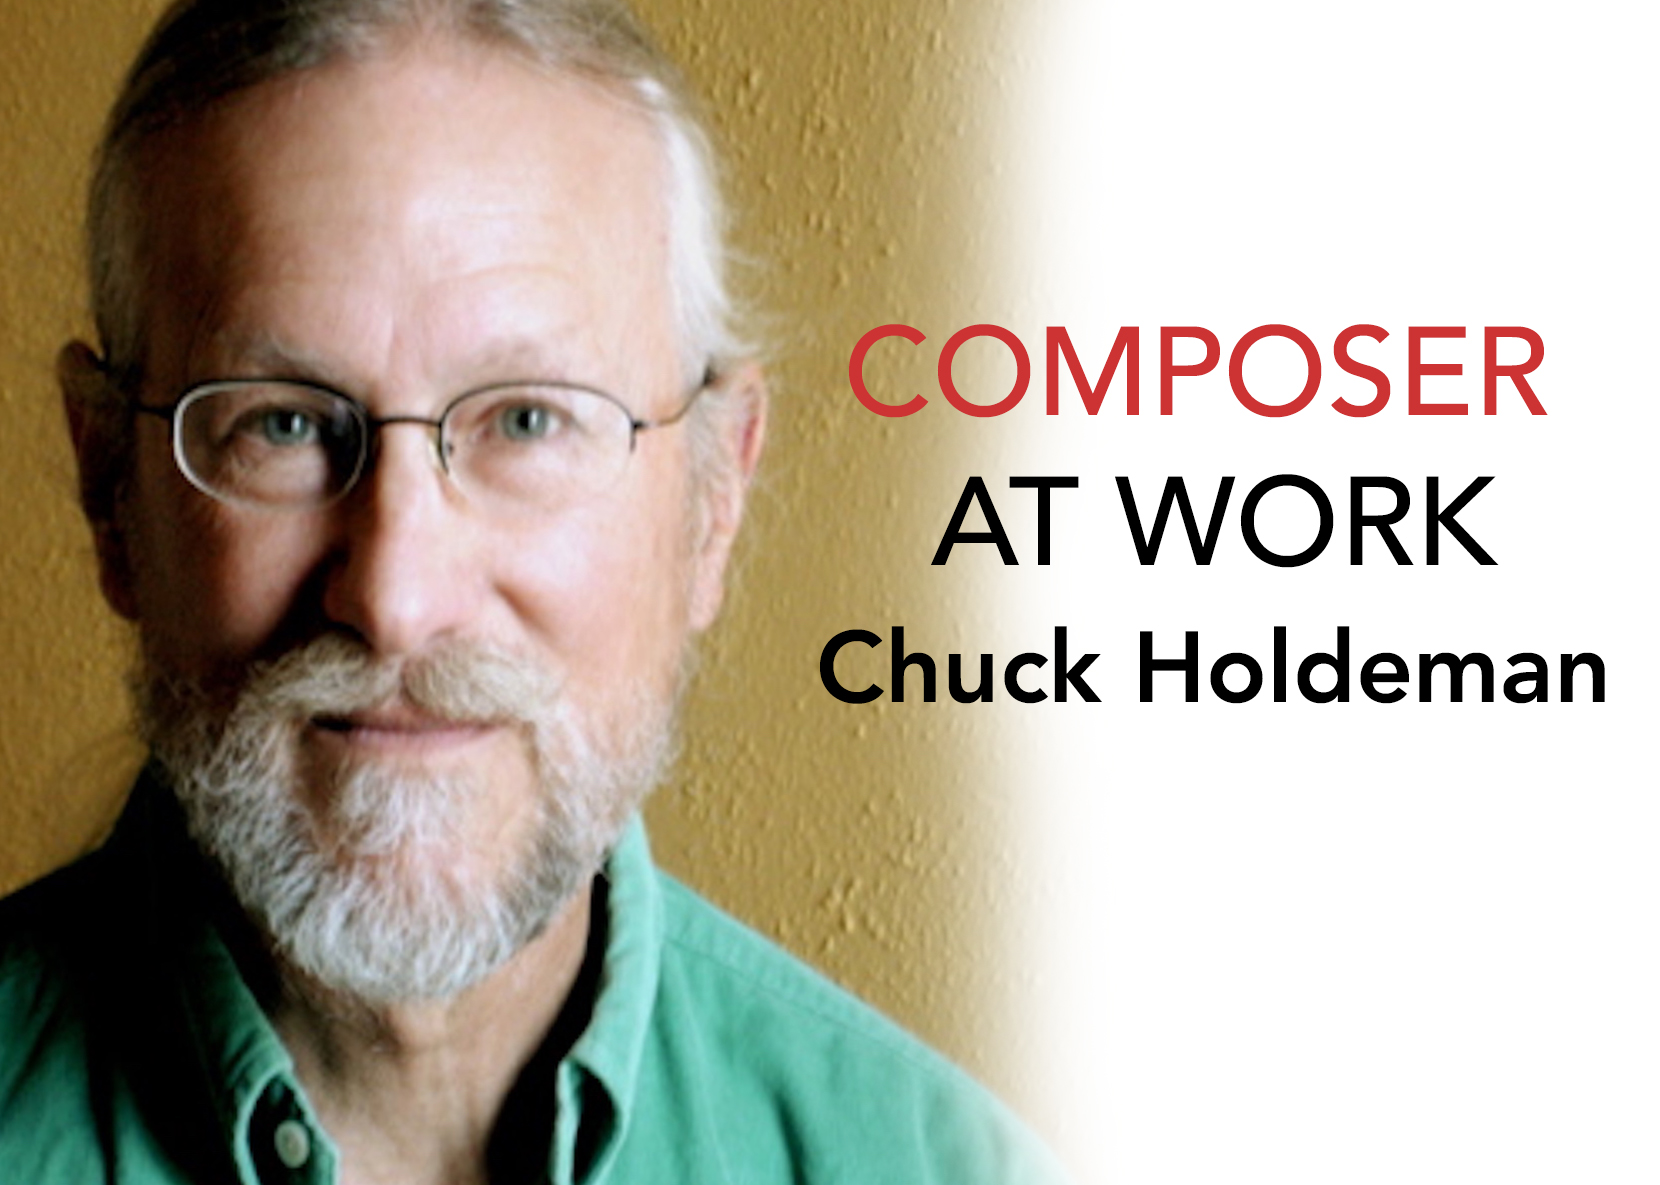 Chuck Holdeman, Composer At Work